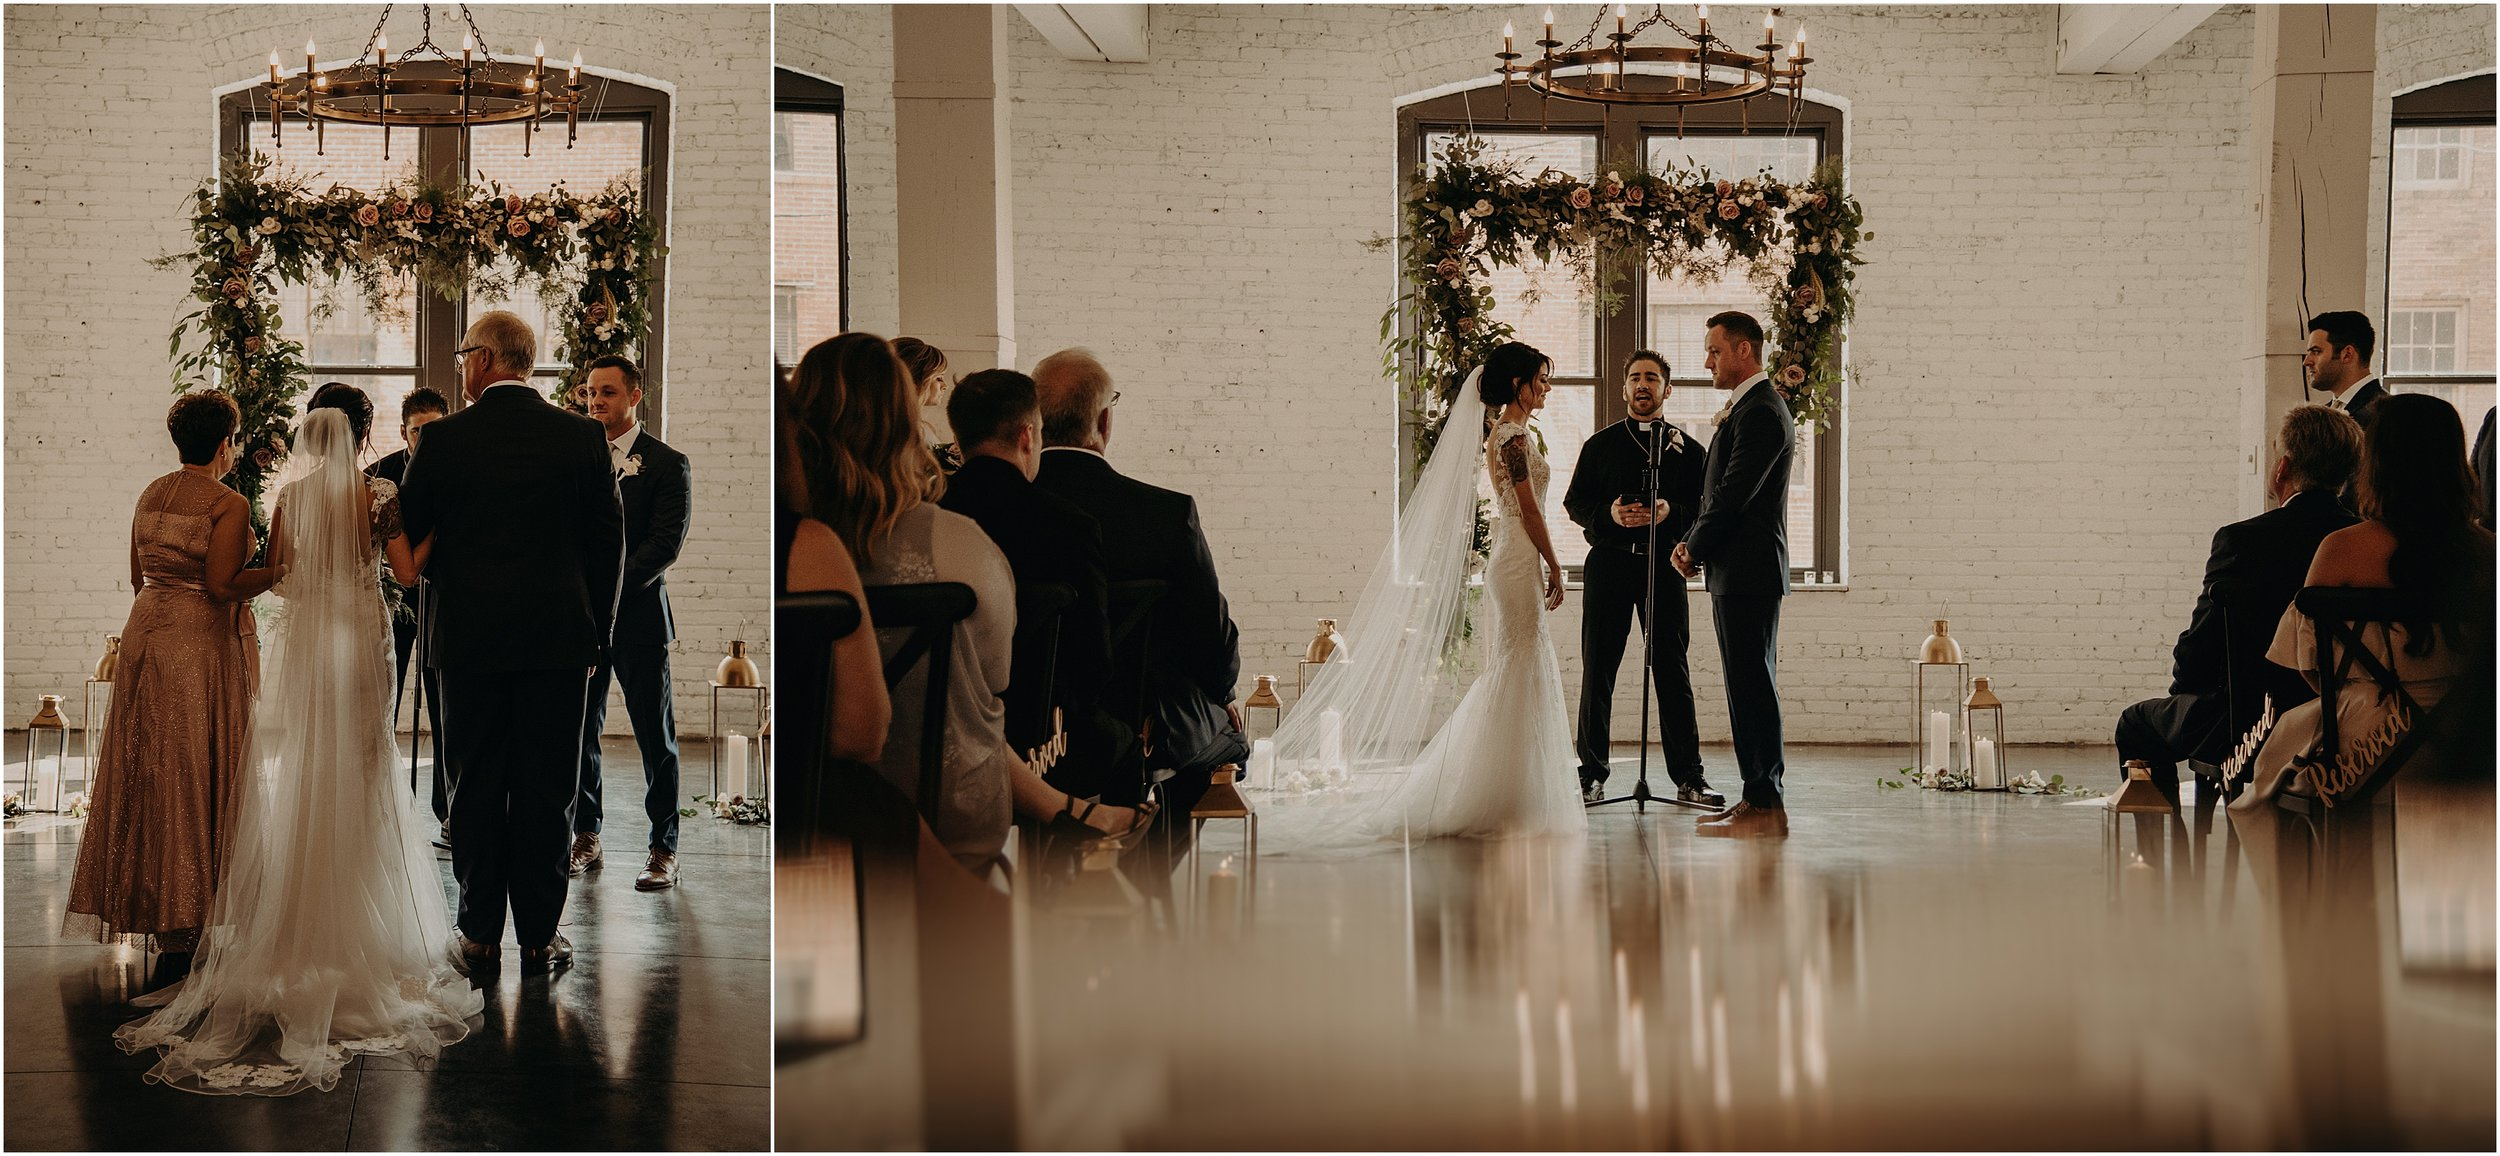 Romantic and timeless ceremony details for this wedding at Co. 251 in Chicago, Illinois